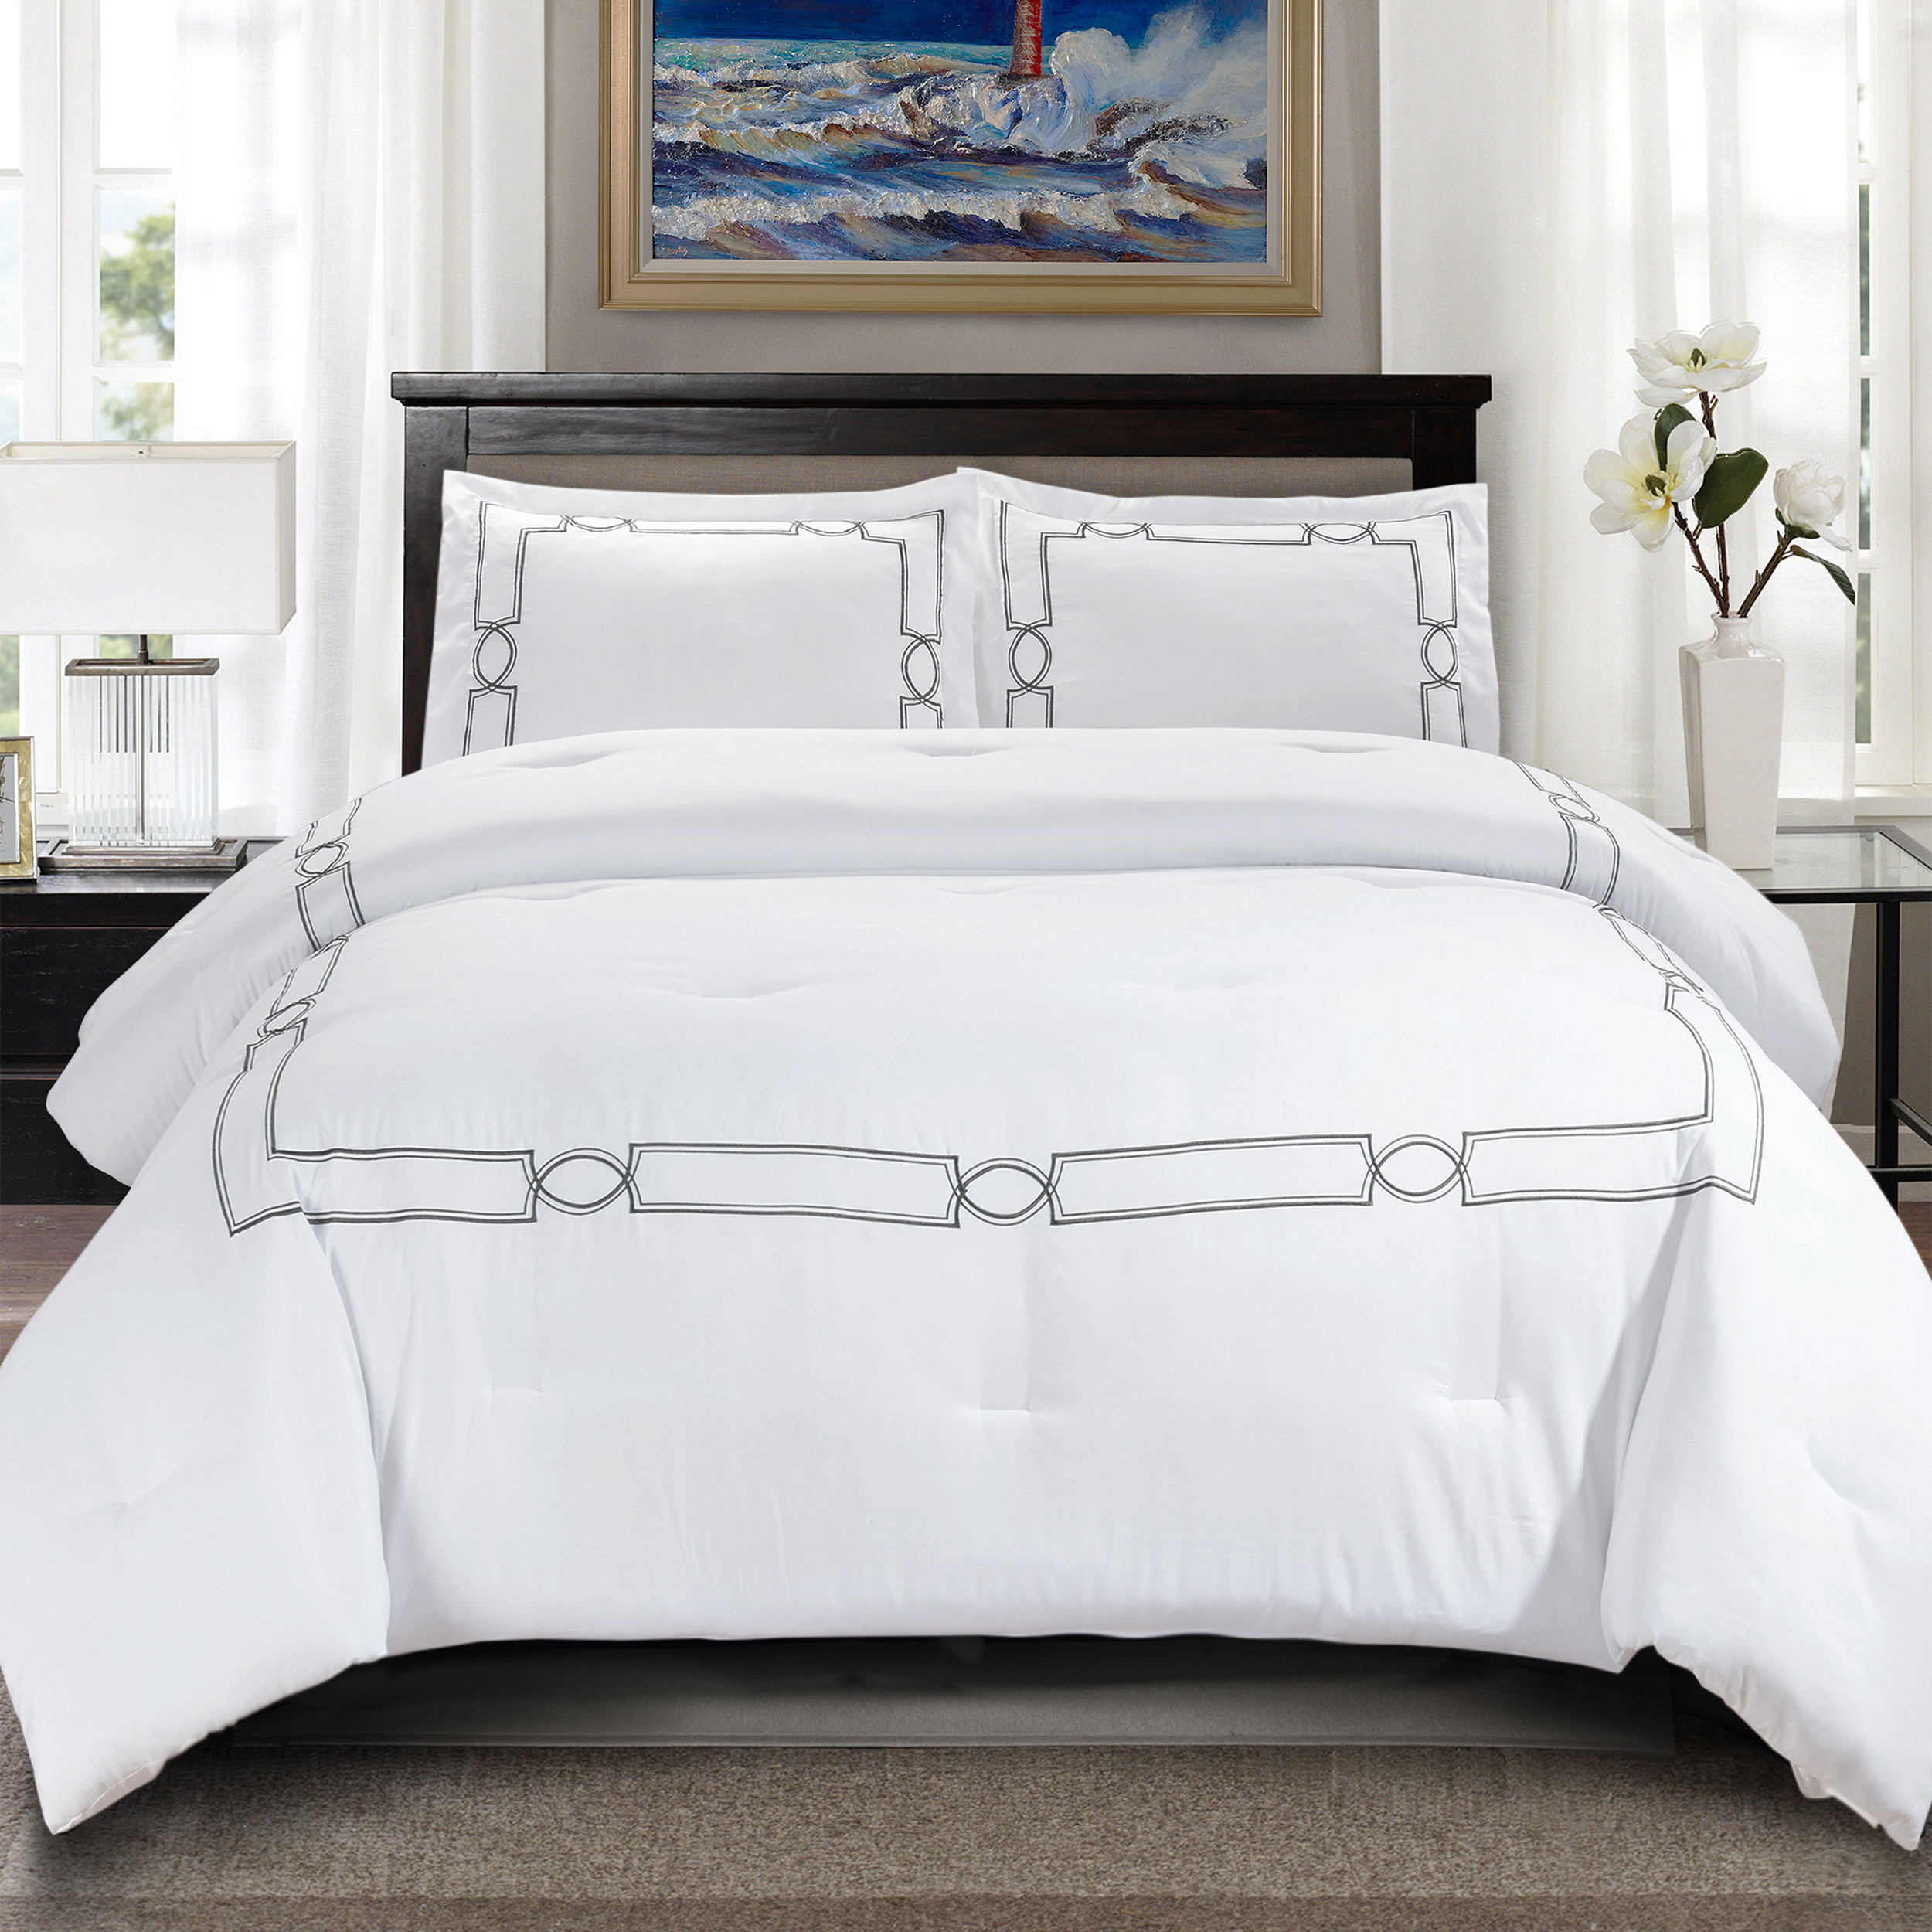 Superior Kensington Embroidered Hypoallergenic,Down Alternative Comforter Set